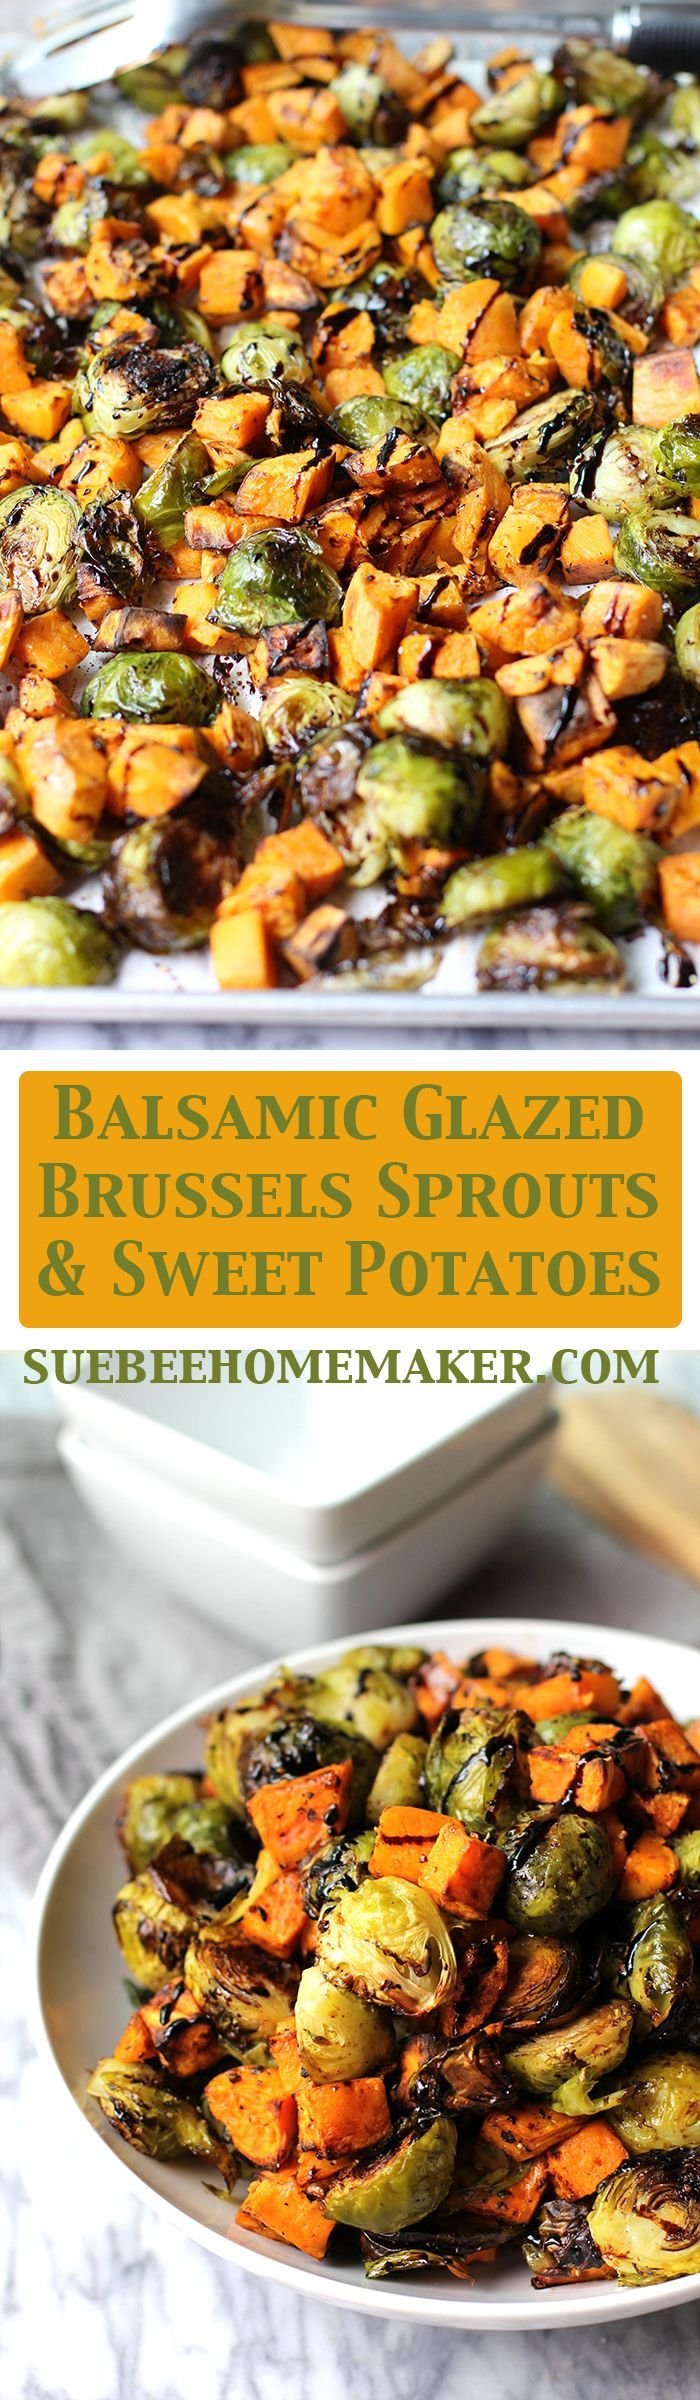 Balsamic Glazed Brussels Sprouts and Sweet Potatoes are super easy to prepare. The balsamic glaze takes the taste of veggies to a new level.